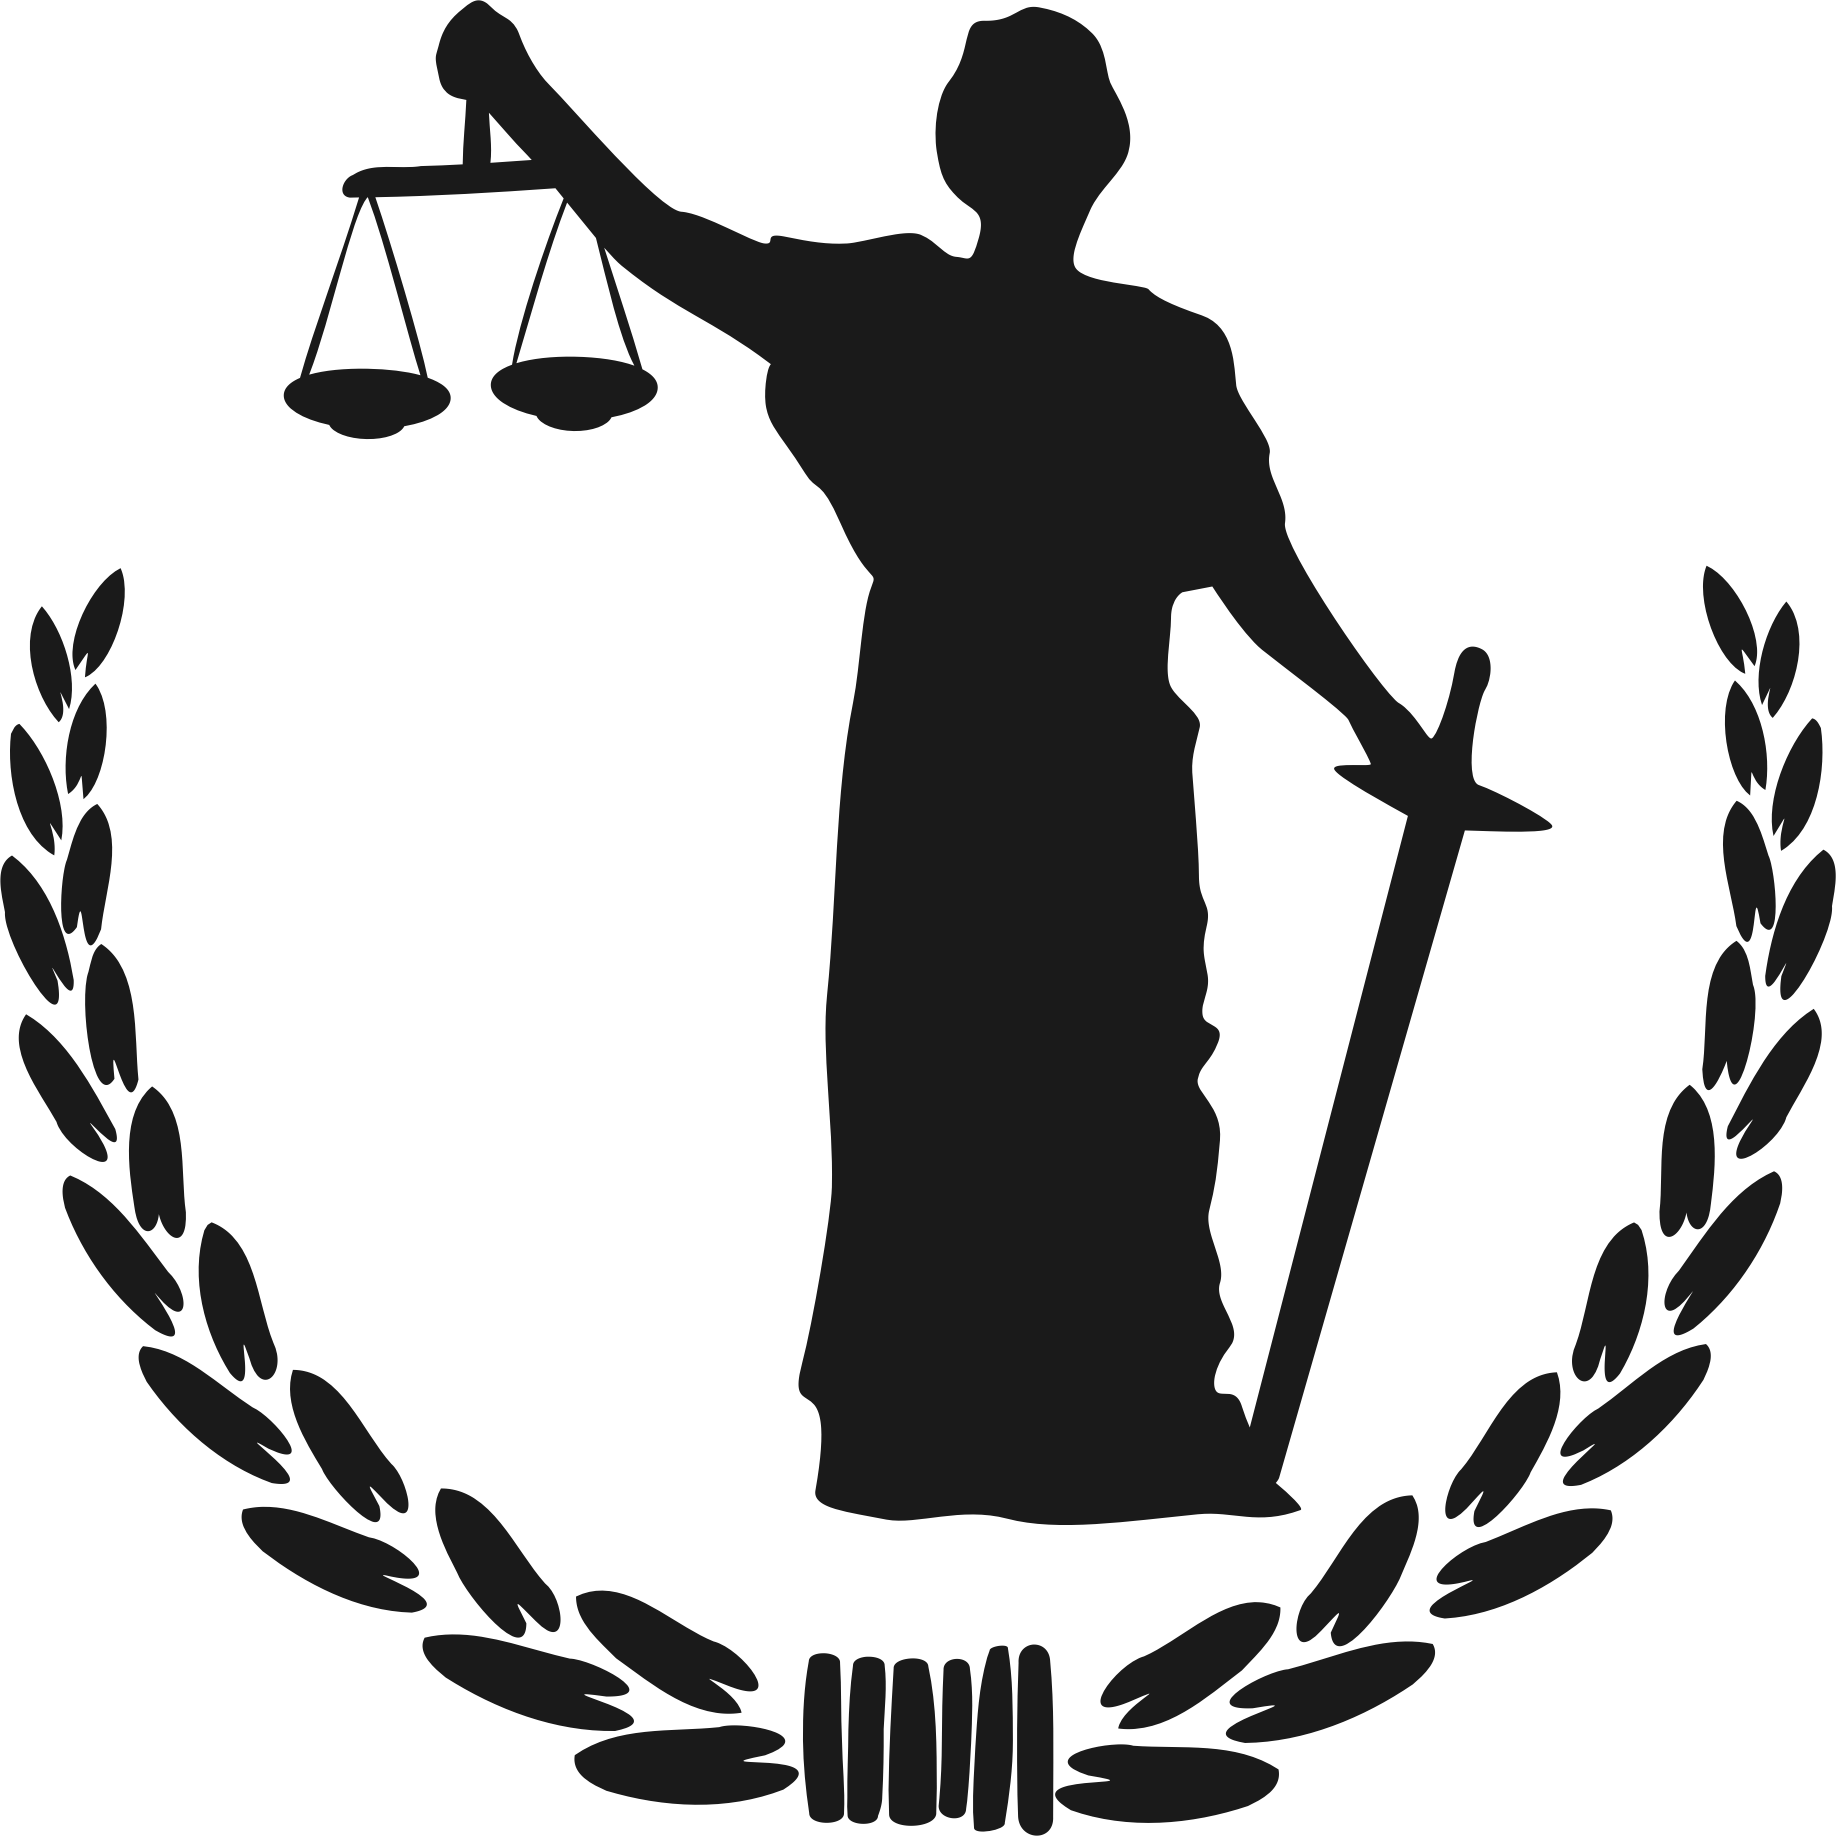 Laws clipart judicial power, Laws judicial power Transparent.